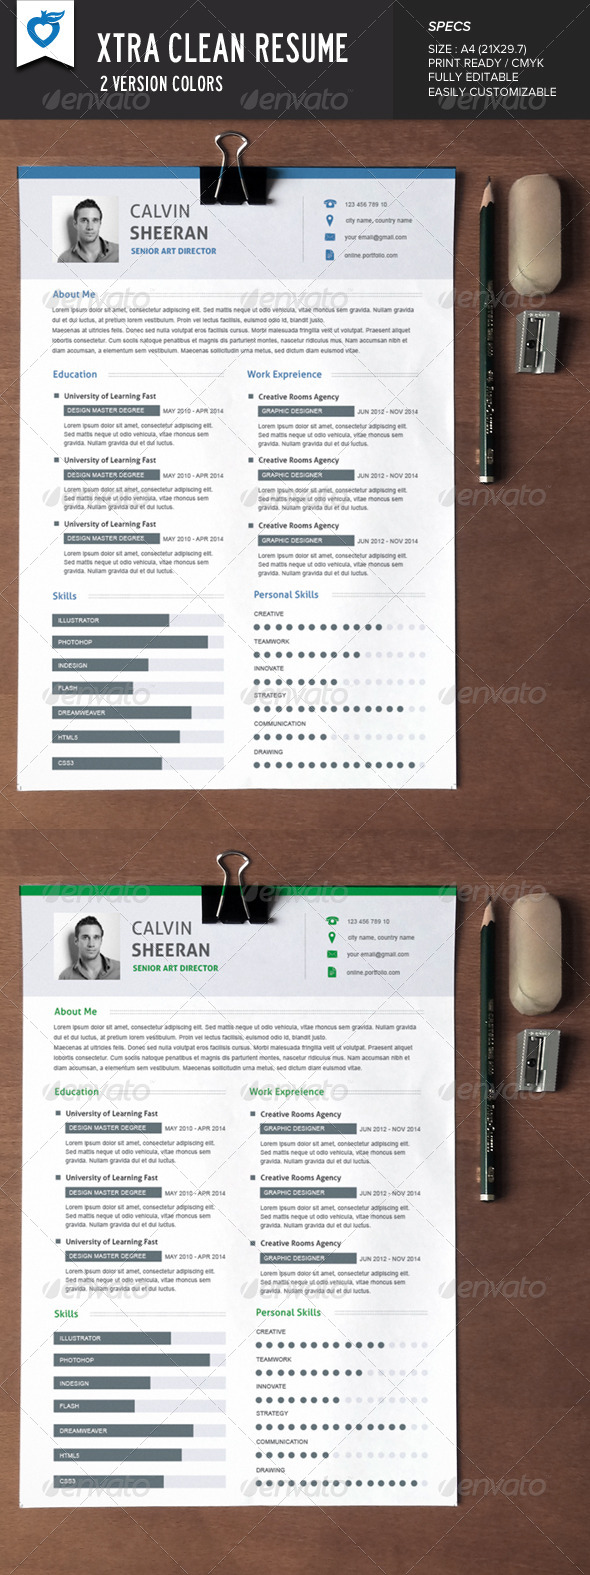 GraphicRiver Xtra Clean Resume 7878728